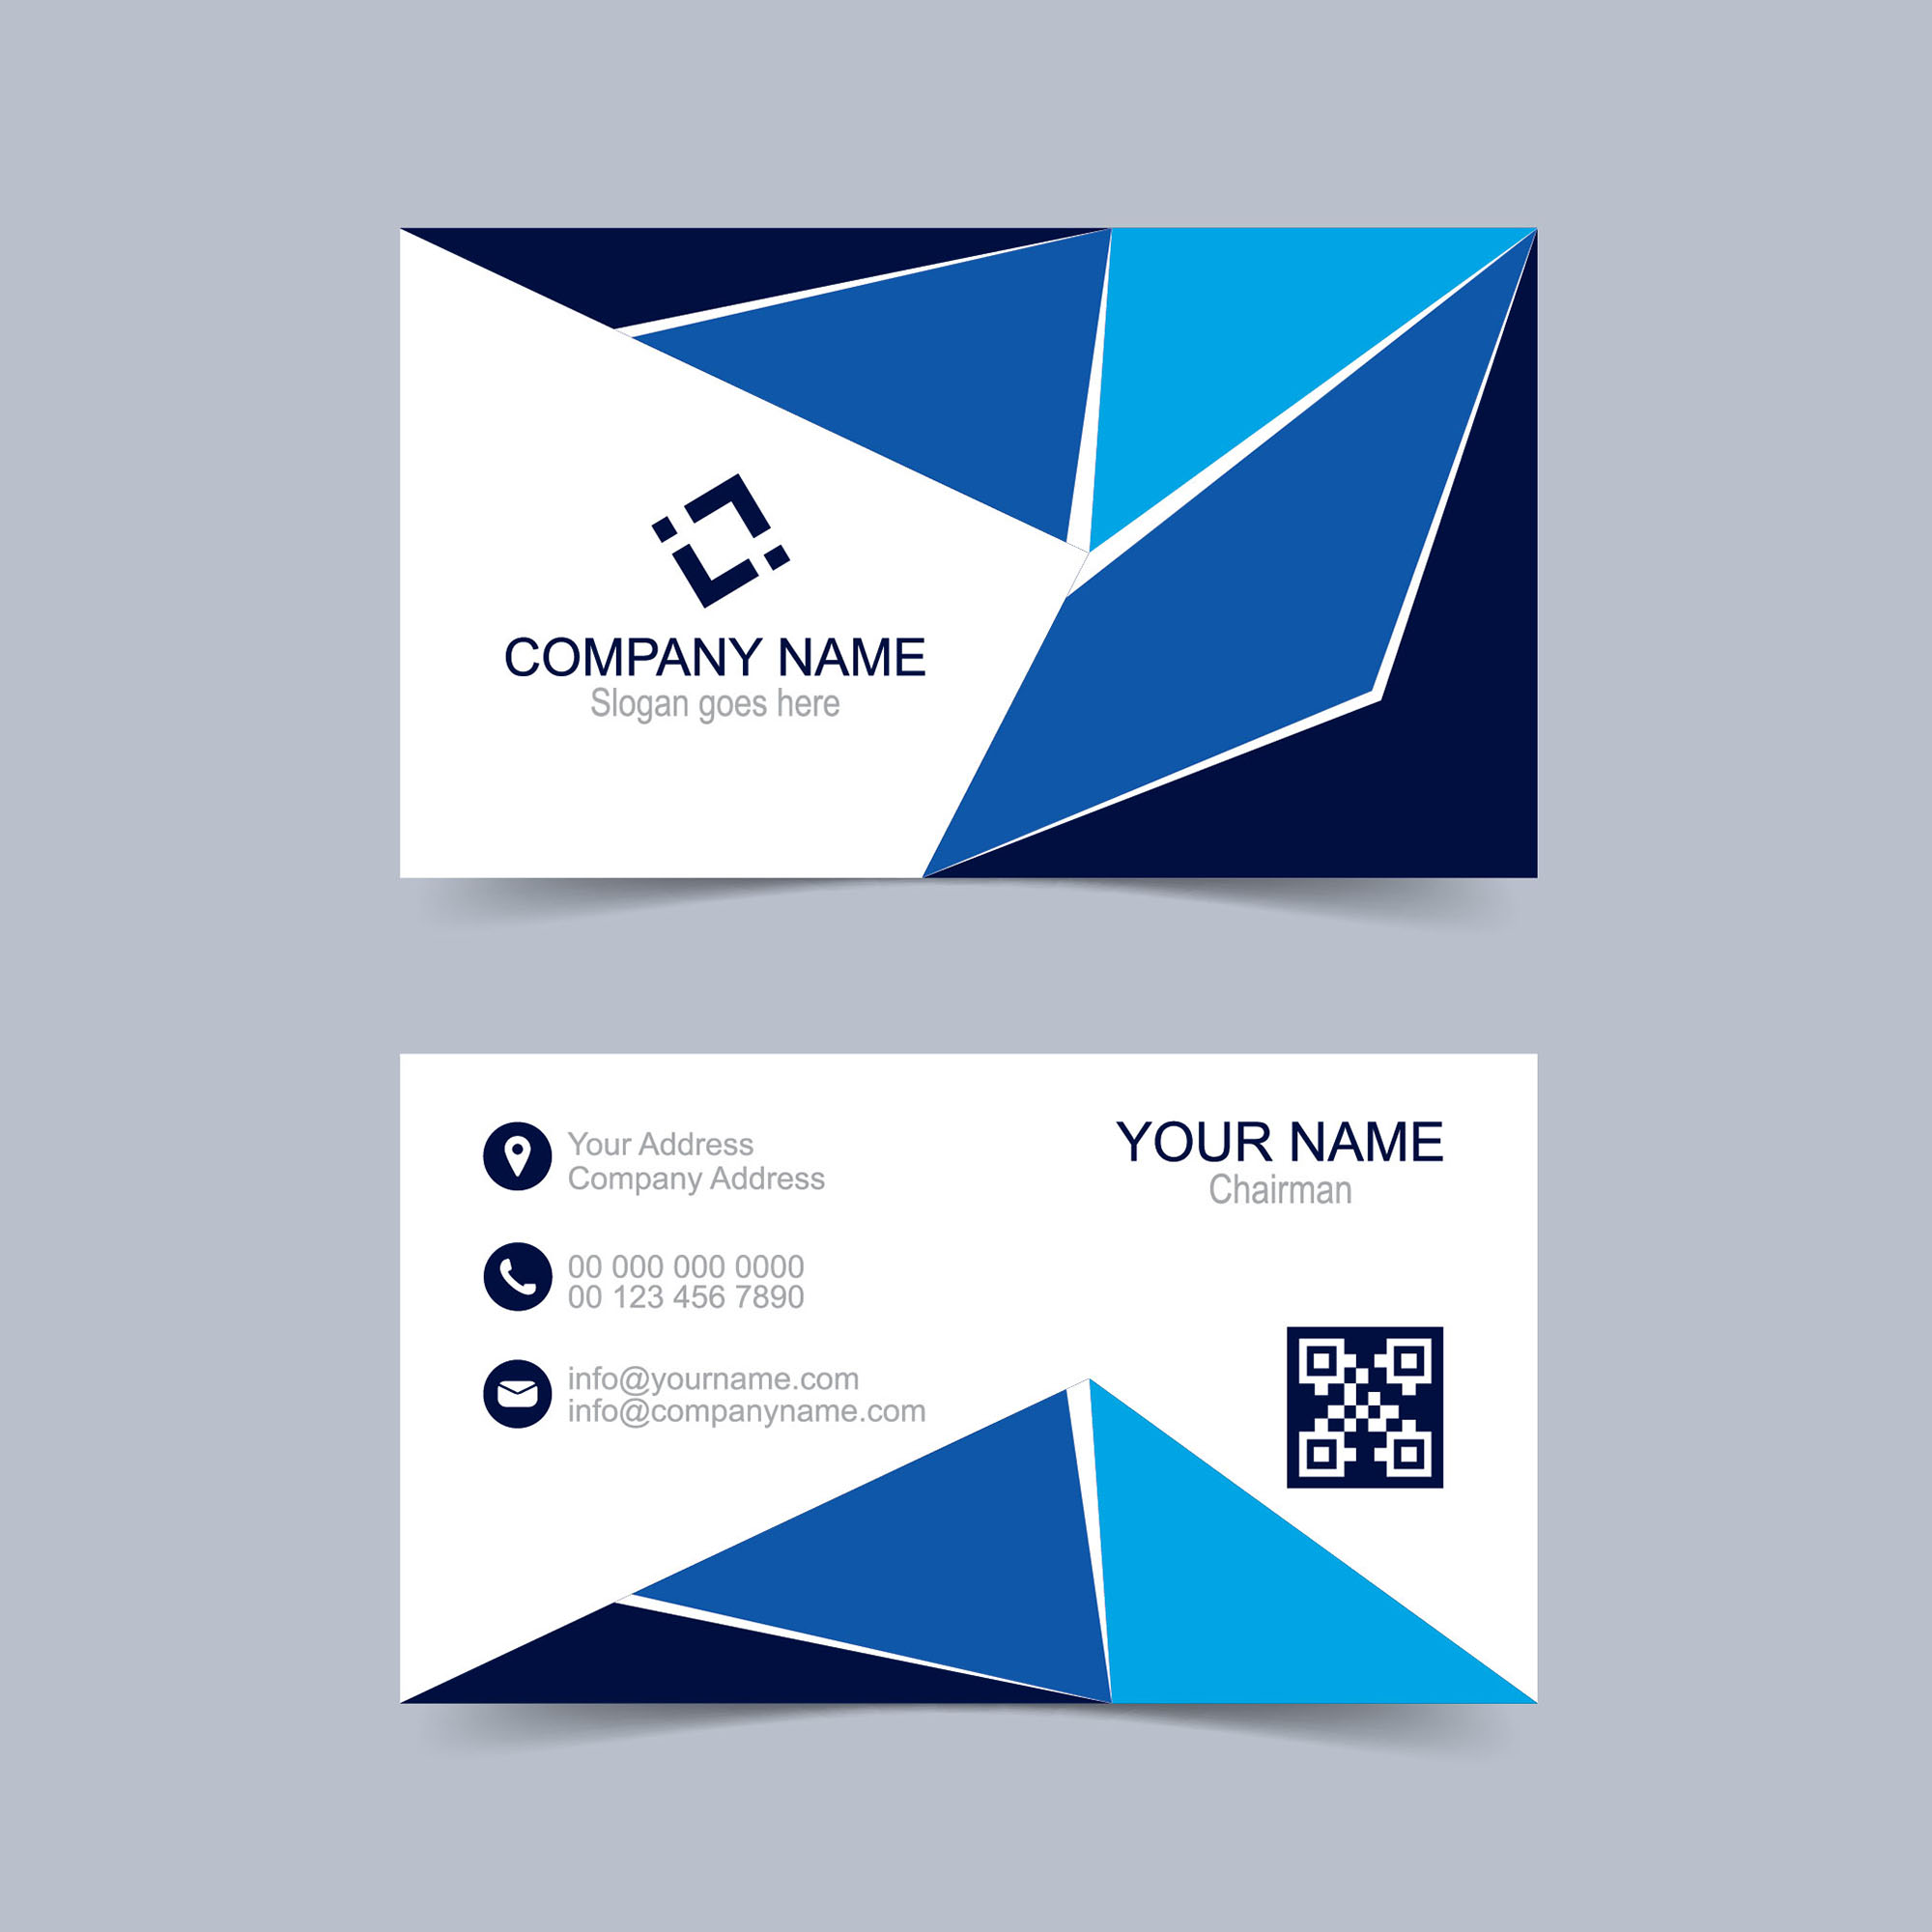 Creative business card design free download wisxi business card business cards business card design business card template design templates friedricerecipe